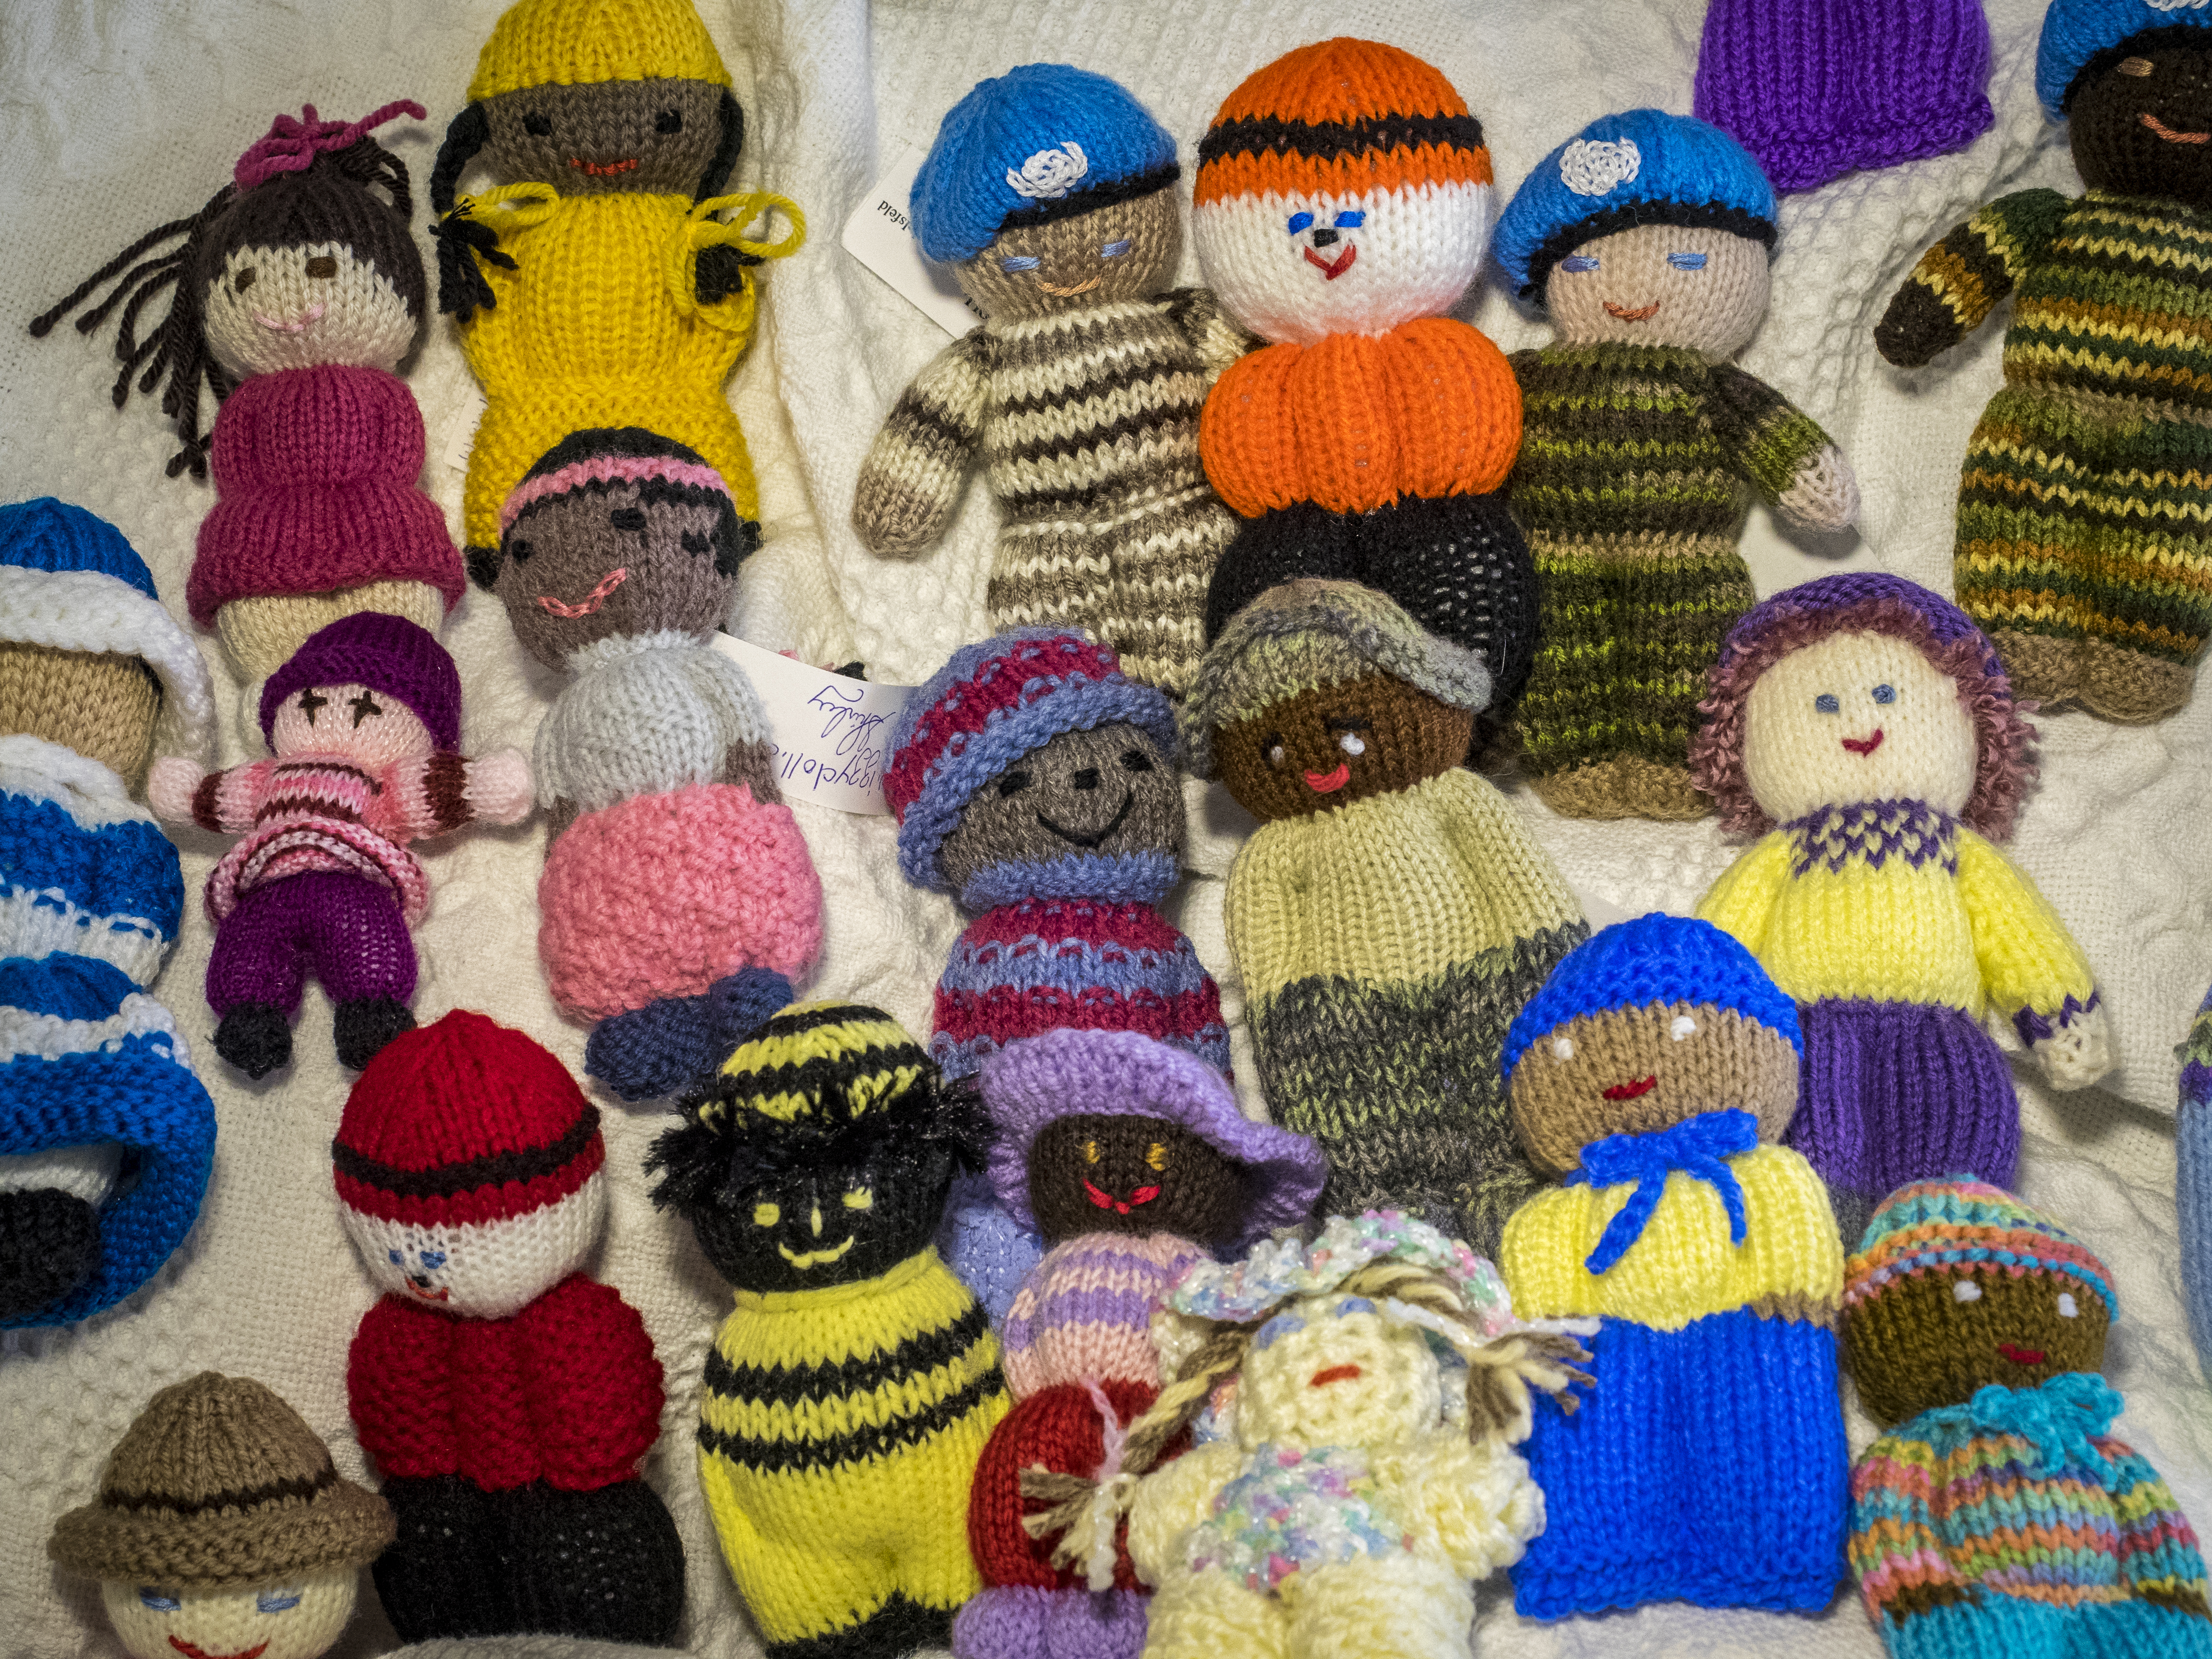 Knitting Patterns For Toys Uk Knit An Izzy Doll For Charity To Spread A Message Of Love And Peace